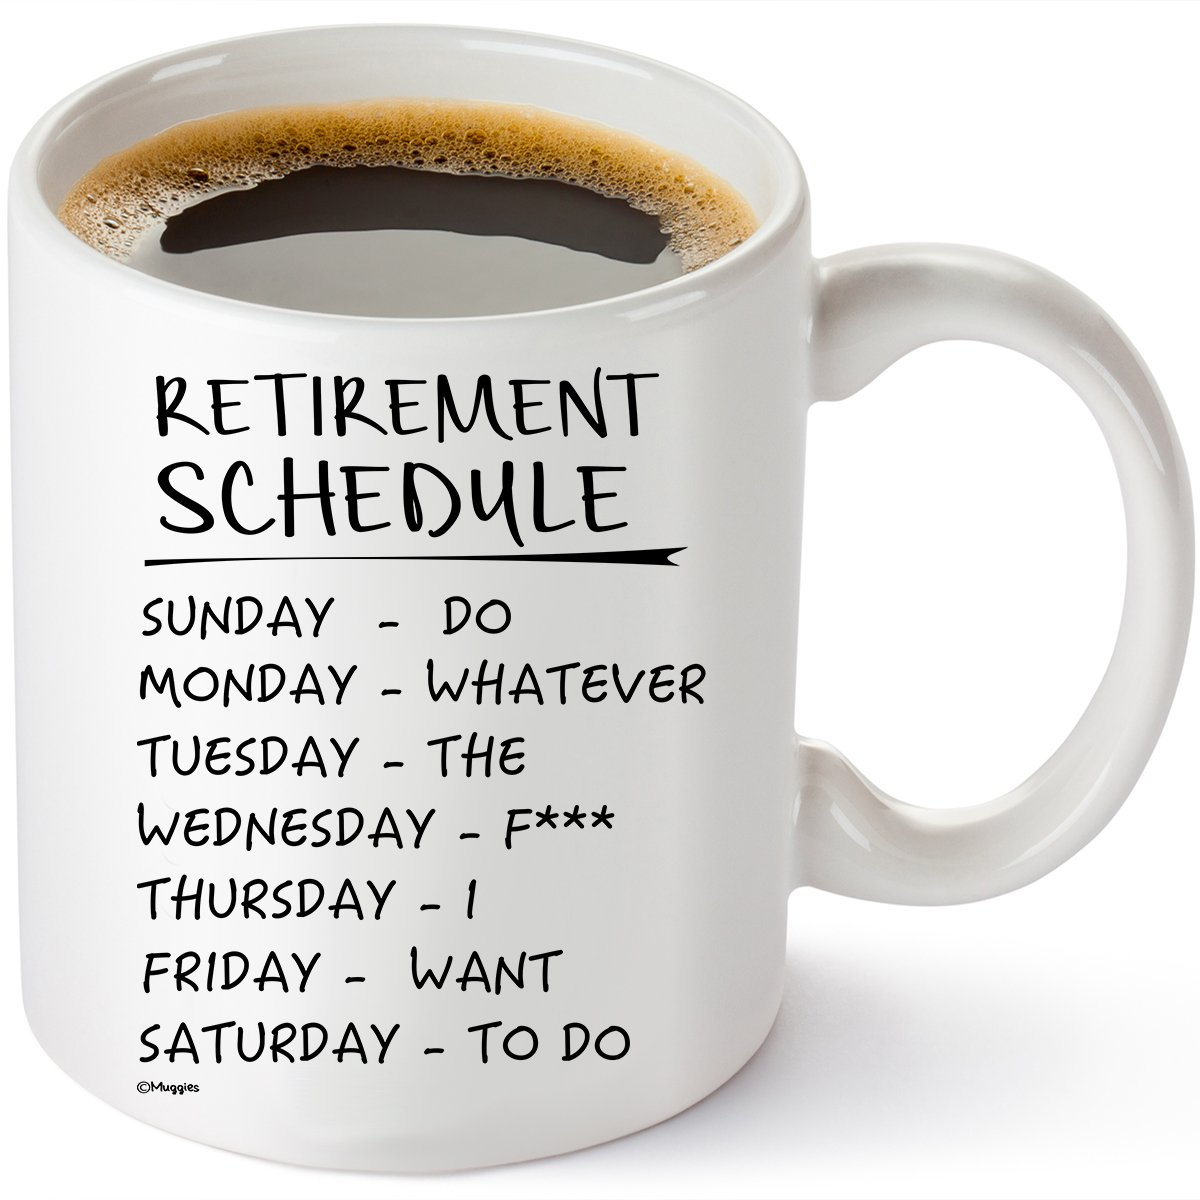 Amazon.com: Muggies Retirement Schedule Funny Coffee Tea 11oz. Mug ...